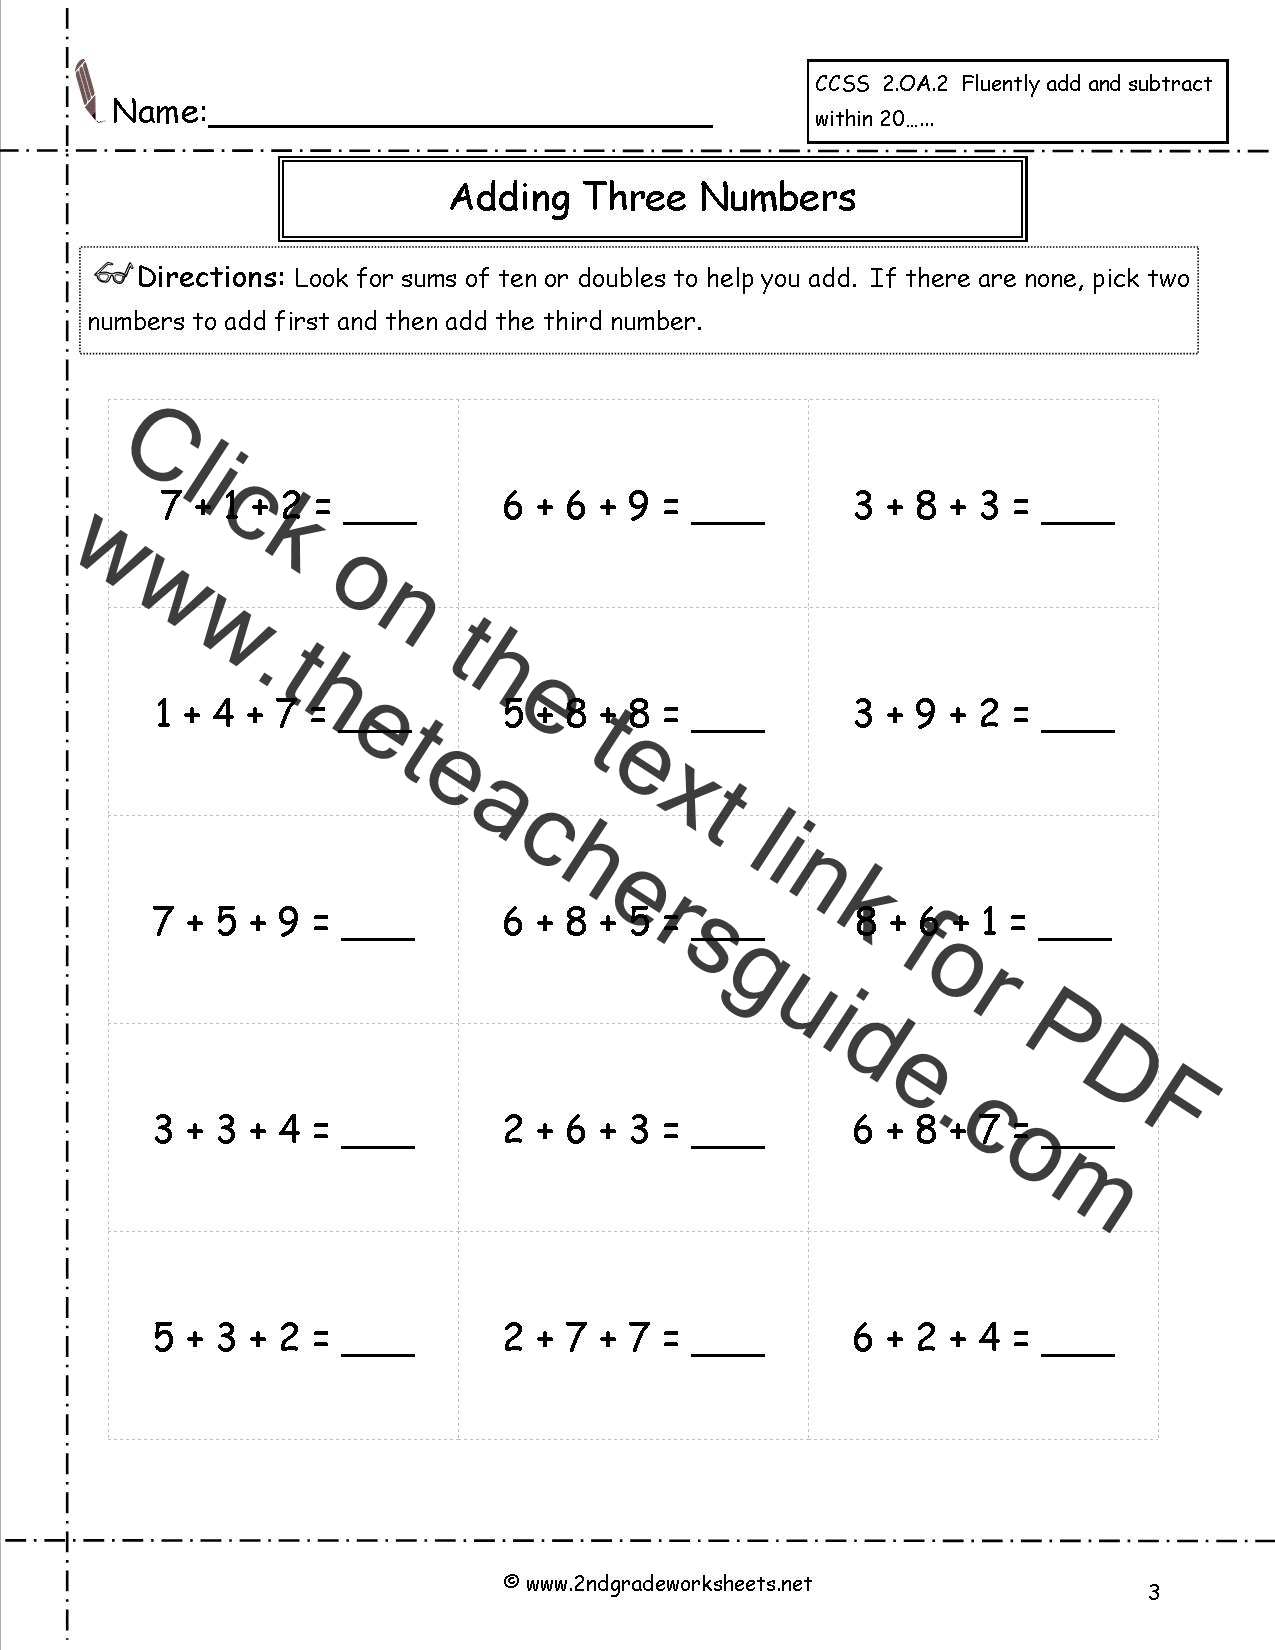 worksheet Adding Three Numbers Worksheets adding three or more single digit numbers worksheets digits additon worksheet 2